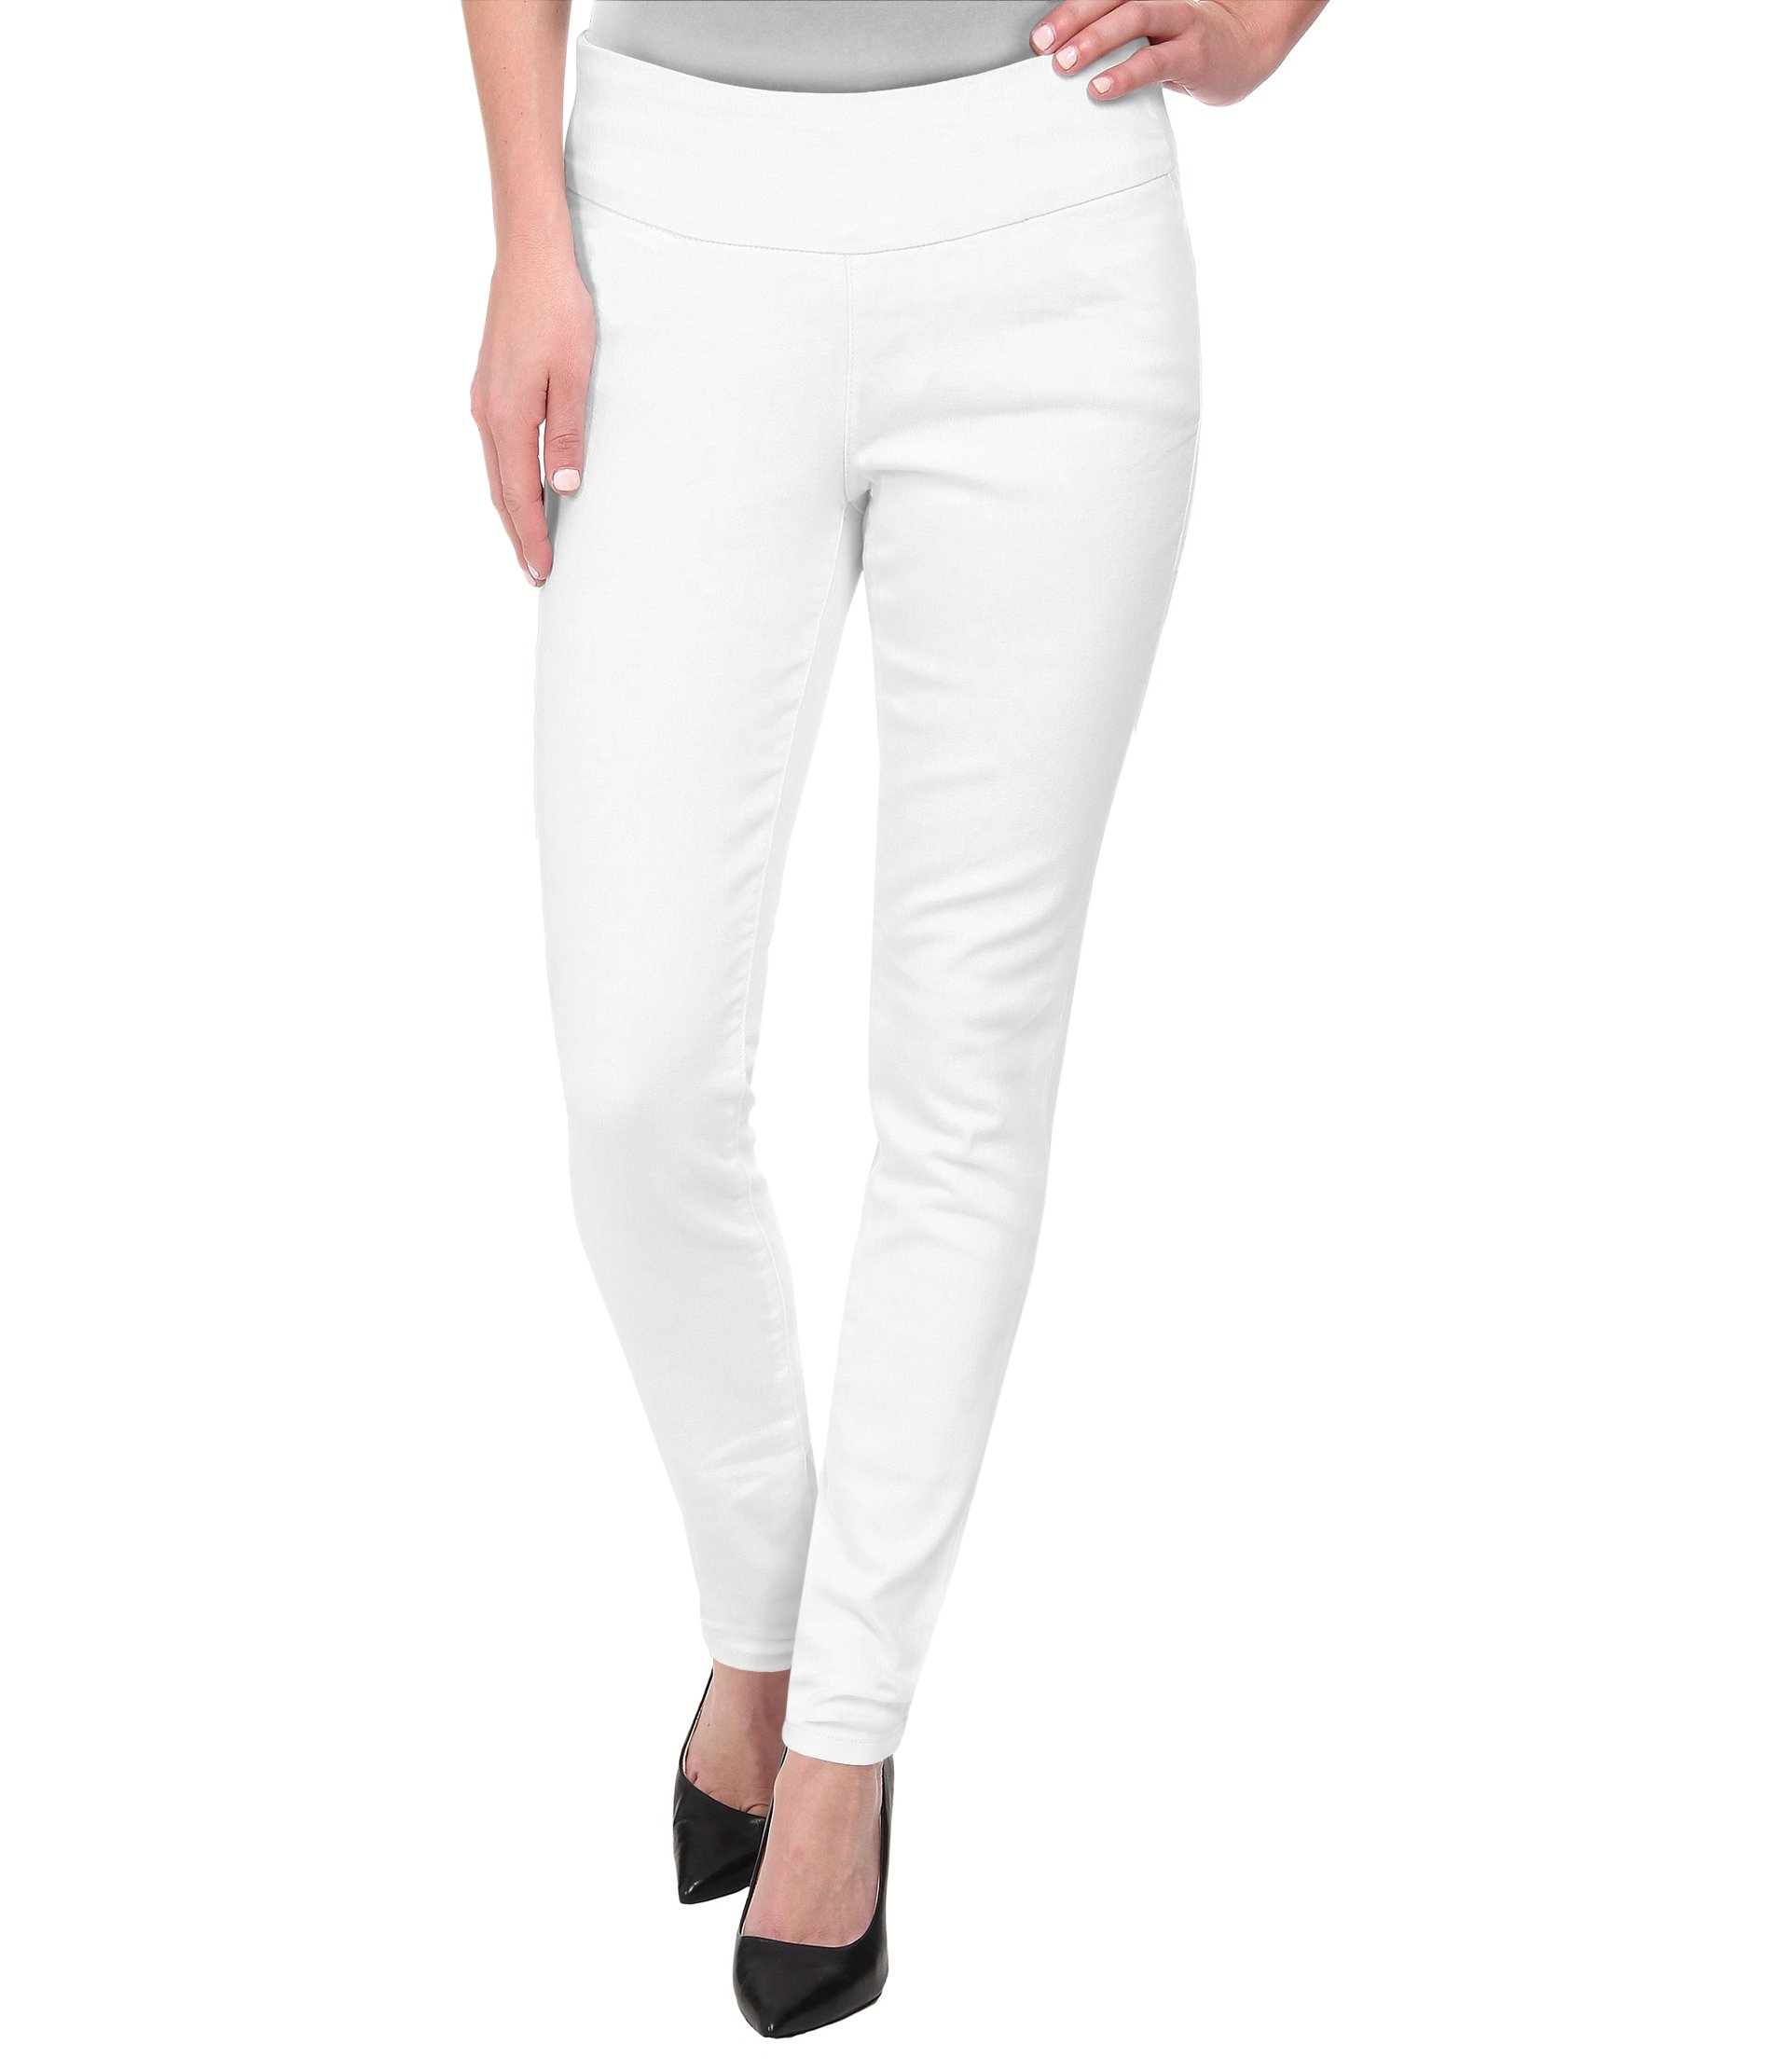 HyBrid & Company Super Comfy Stretch Pull On Millenium Pants KP44972 White XLarge